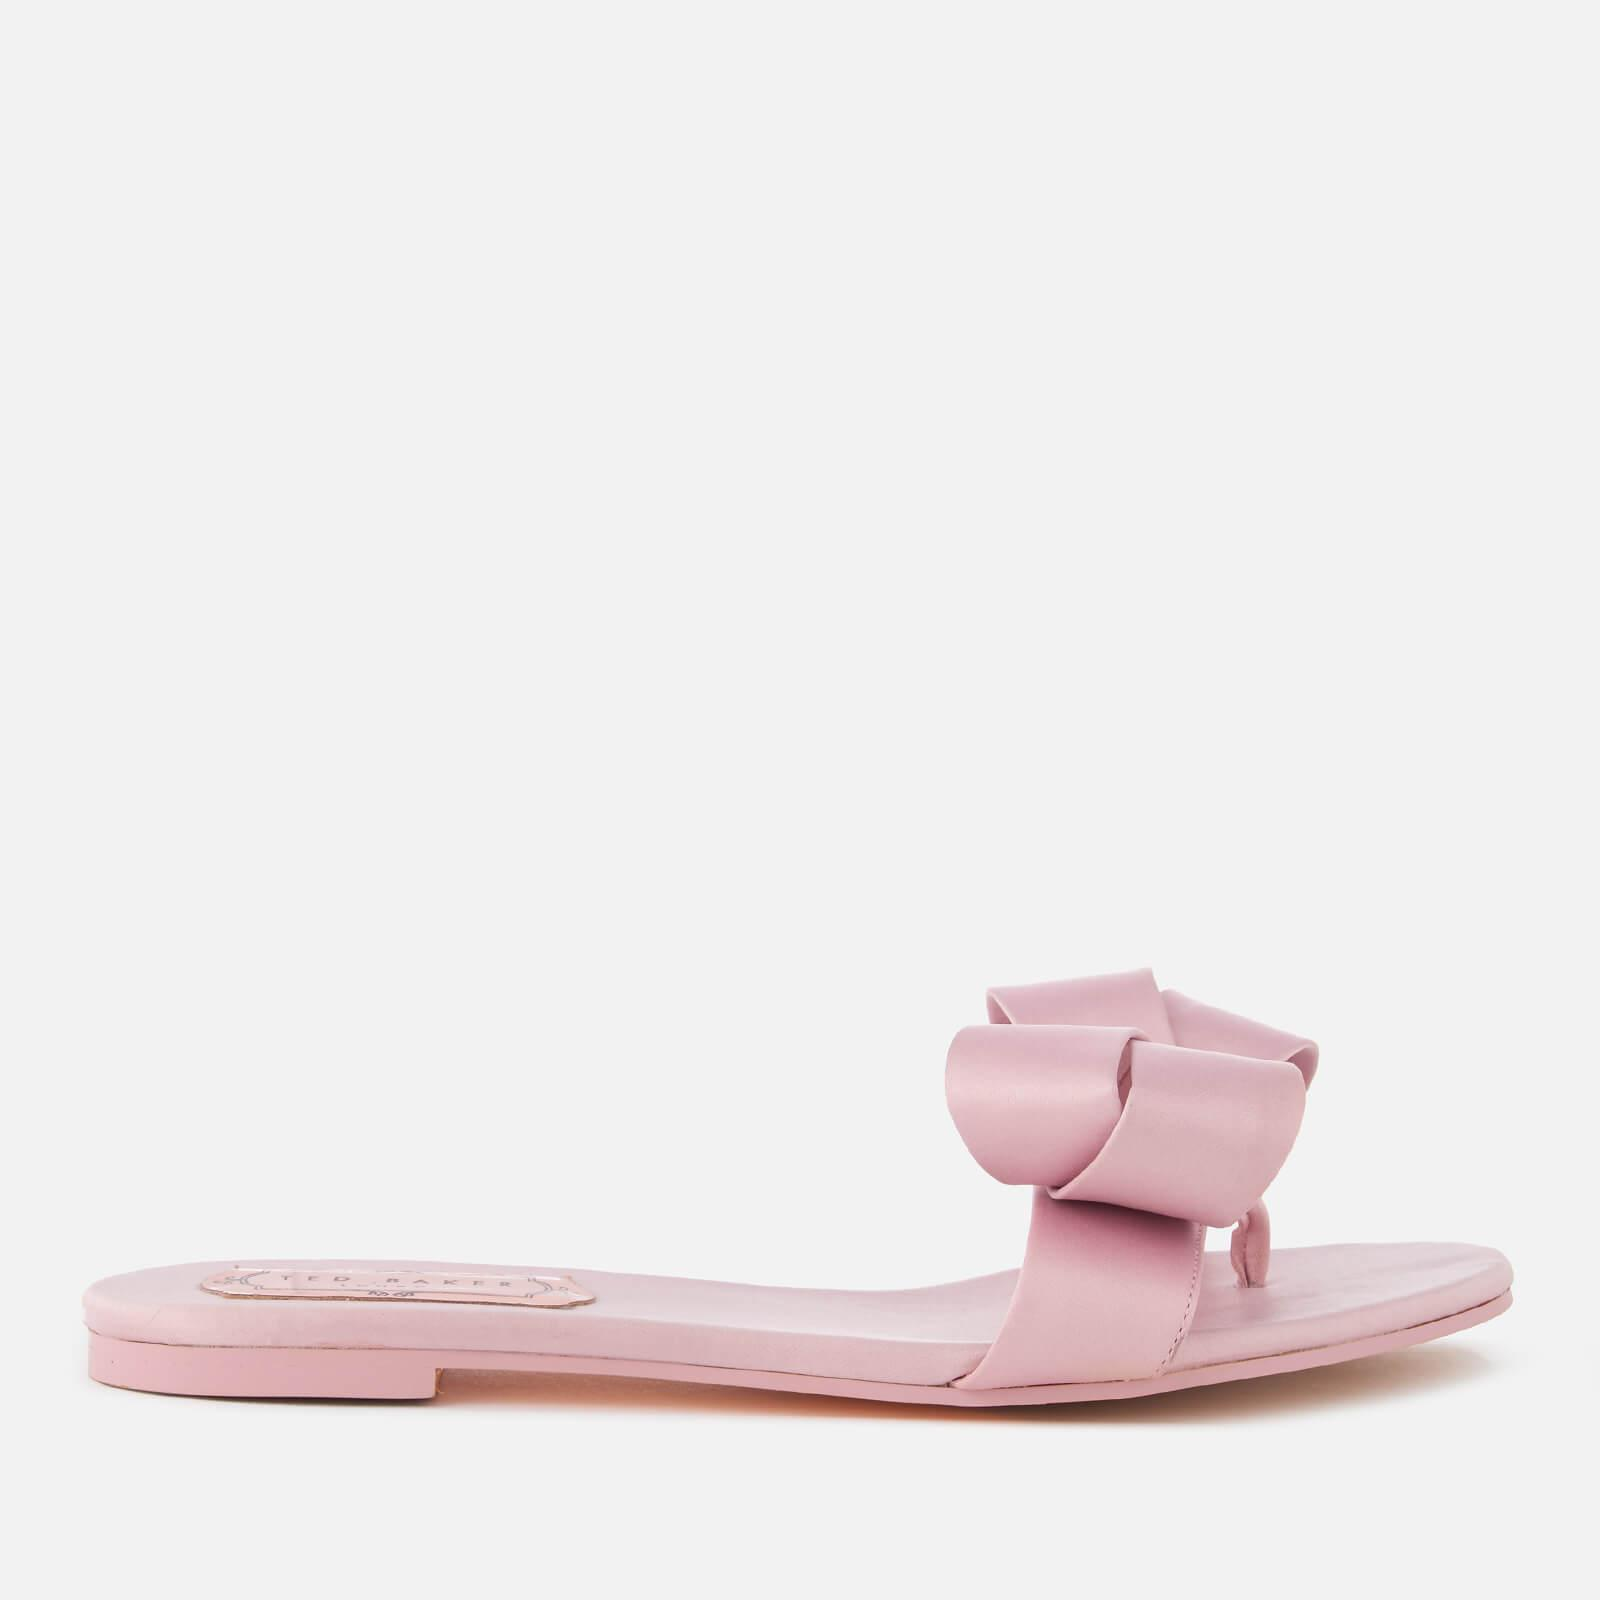 ab9a67b329f5 Lyst - Ted Baker Beauita Satin Bow Slide Sandals in Pink